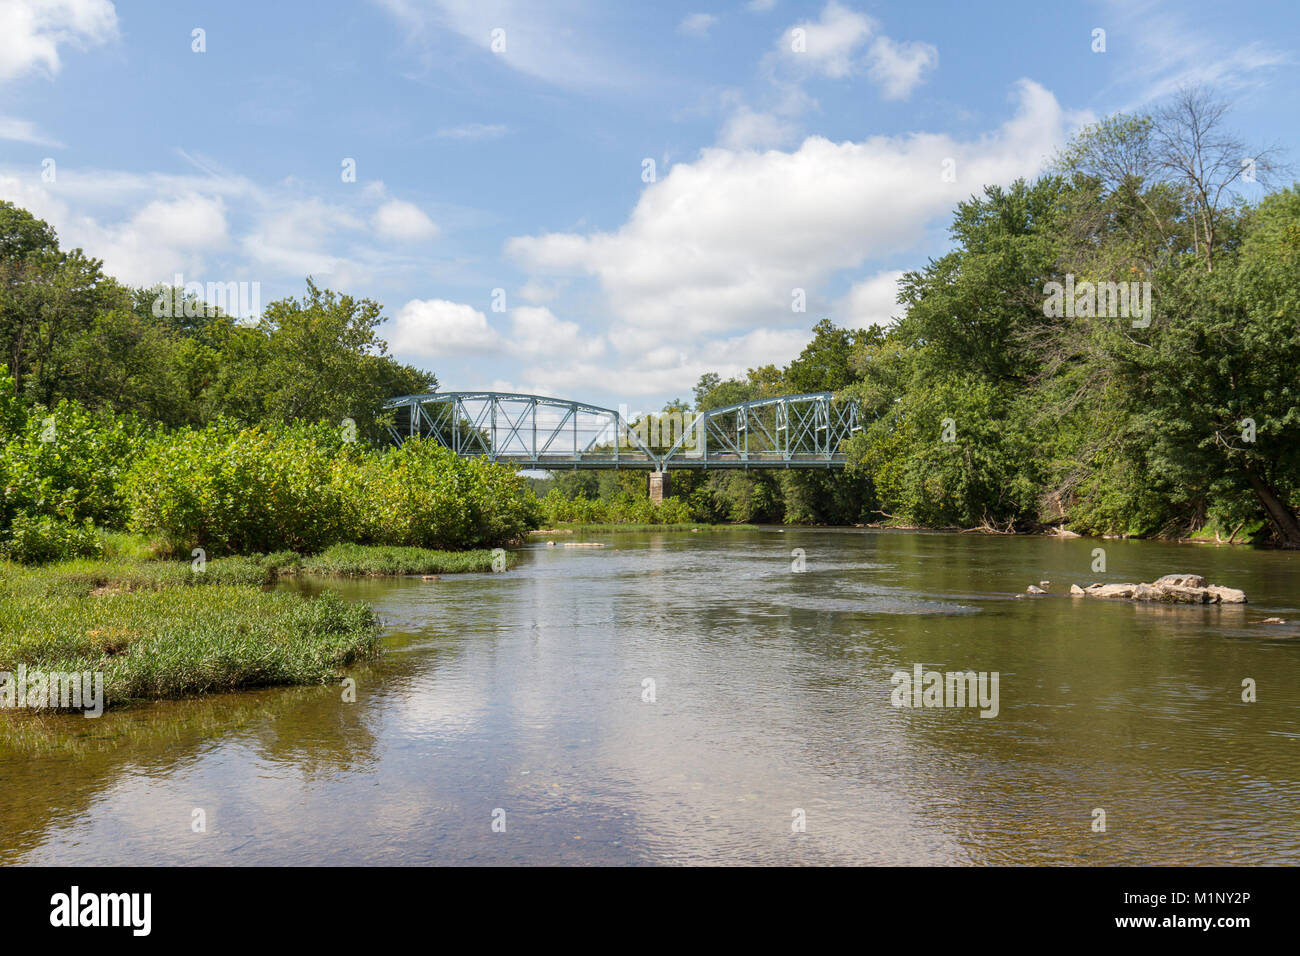 The Urbana Pike (MD 355) road bridge over the Monocacy River, Monocacy National Battlefield, Frederick, MD, USA - Stock Image